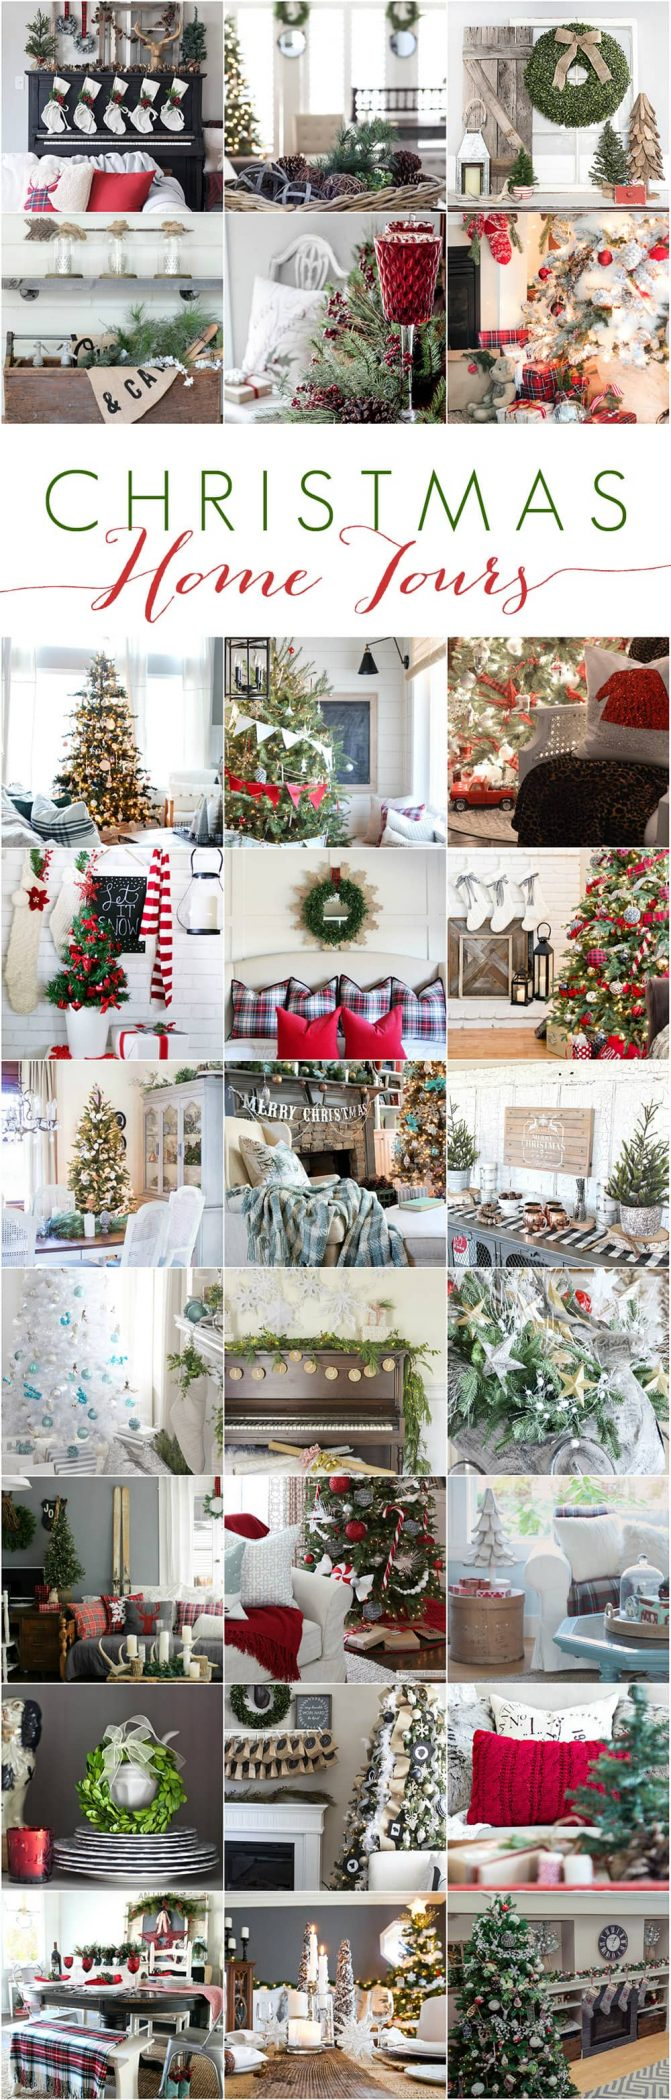 25 incredible Christmas home tours: decorating ideas and inspiration! maisondepax.com